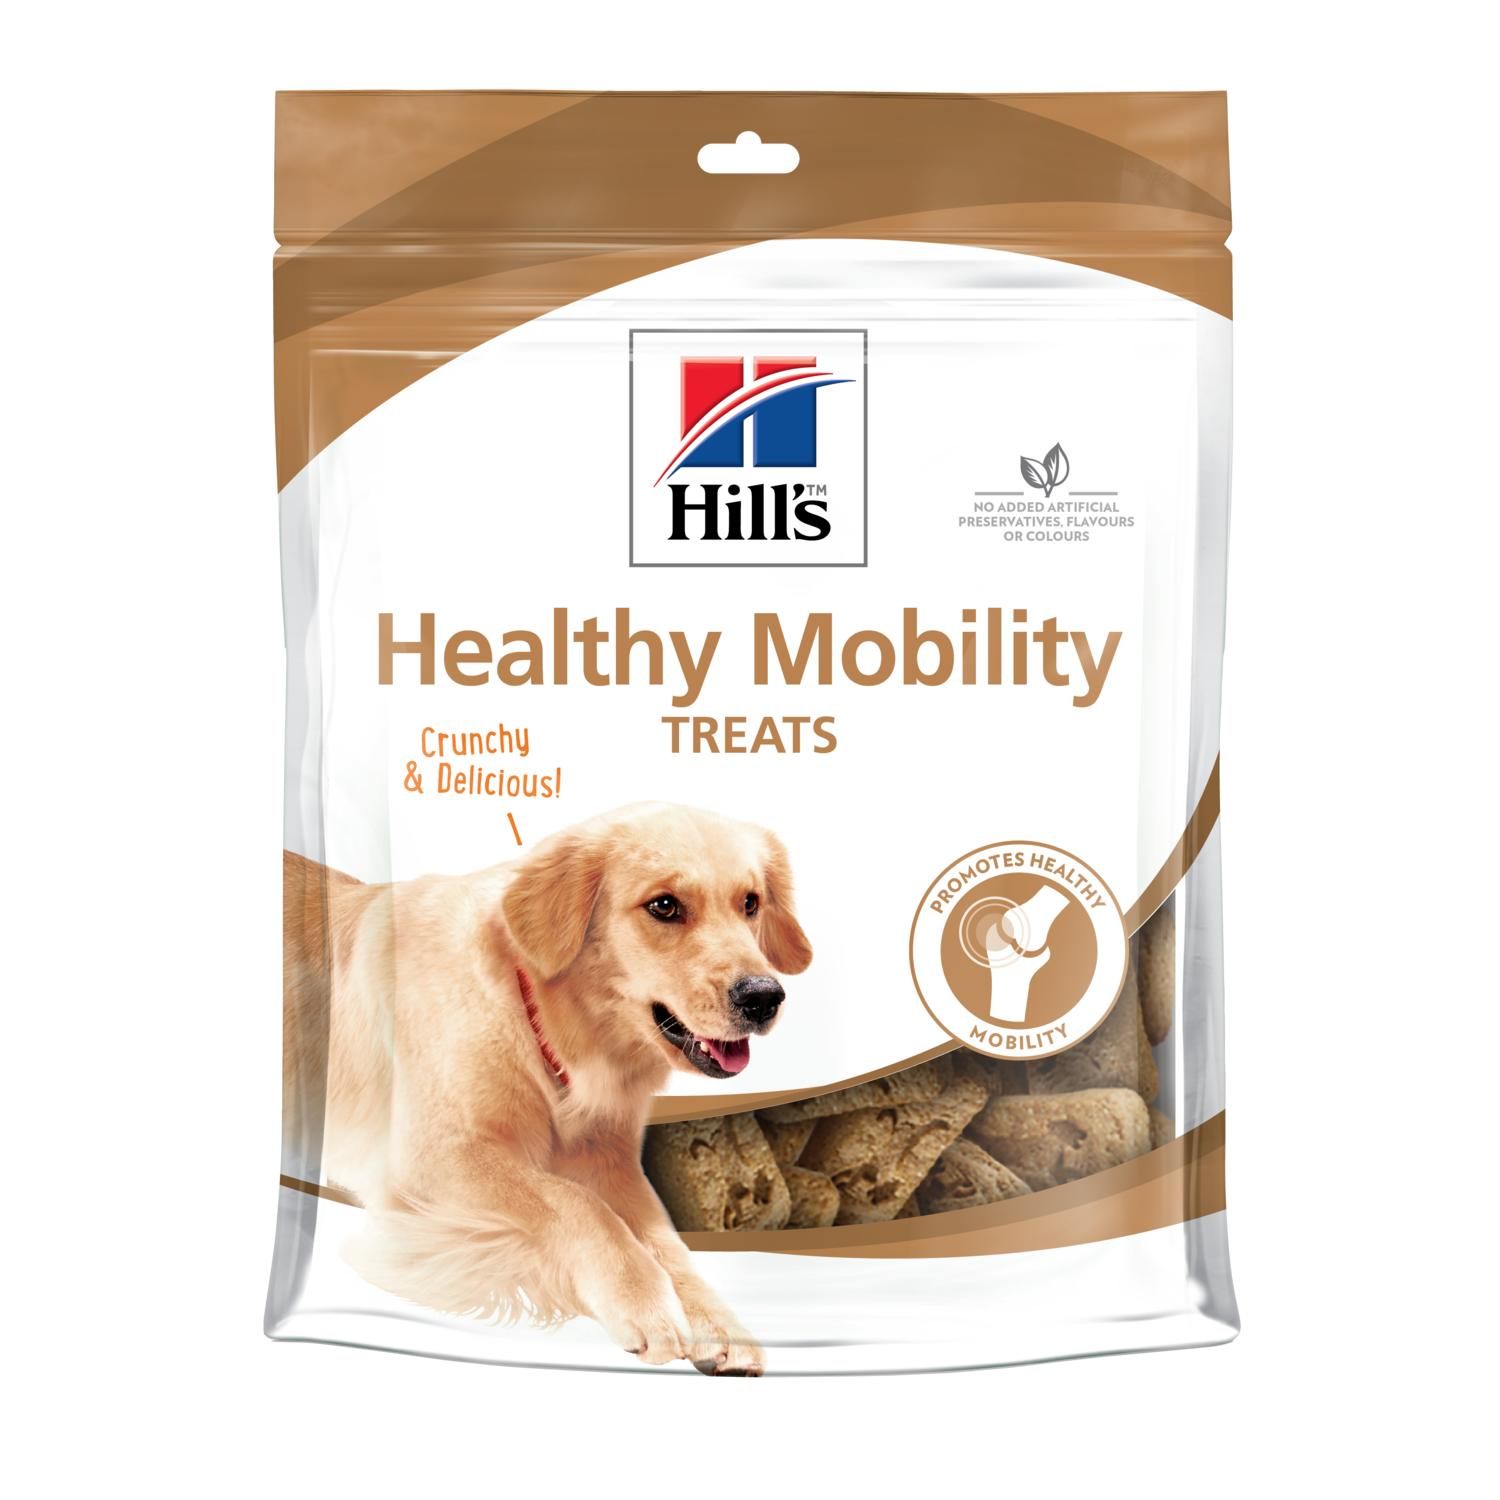 Healthy mobility snack